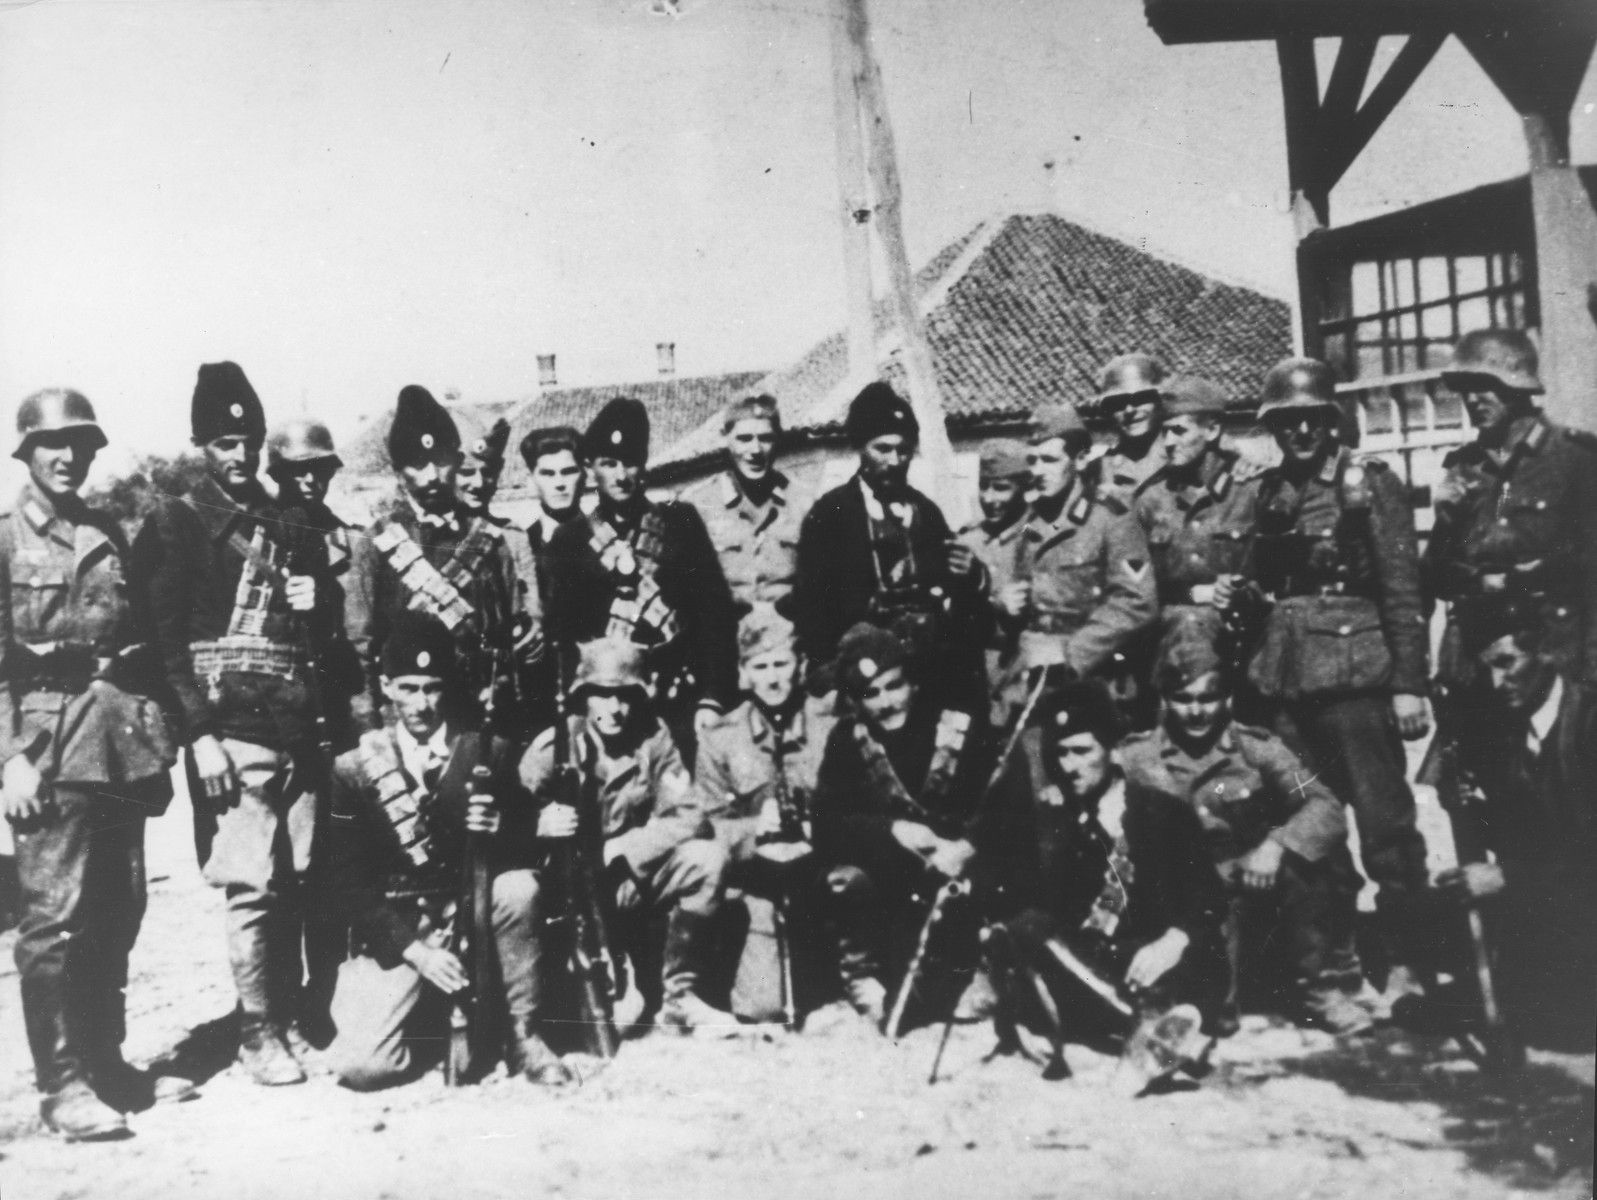 A group of Chetniks pose with German soldiers in an unidentified village in Serbia.